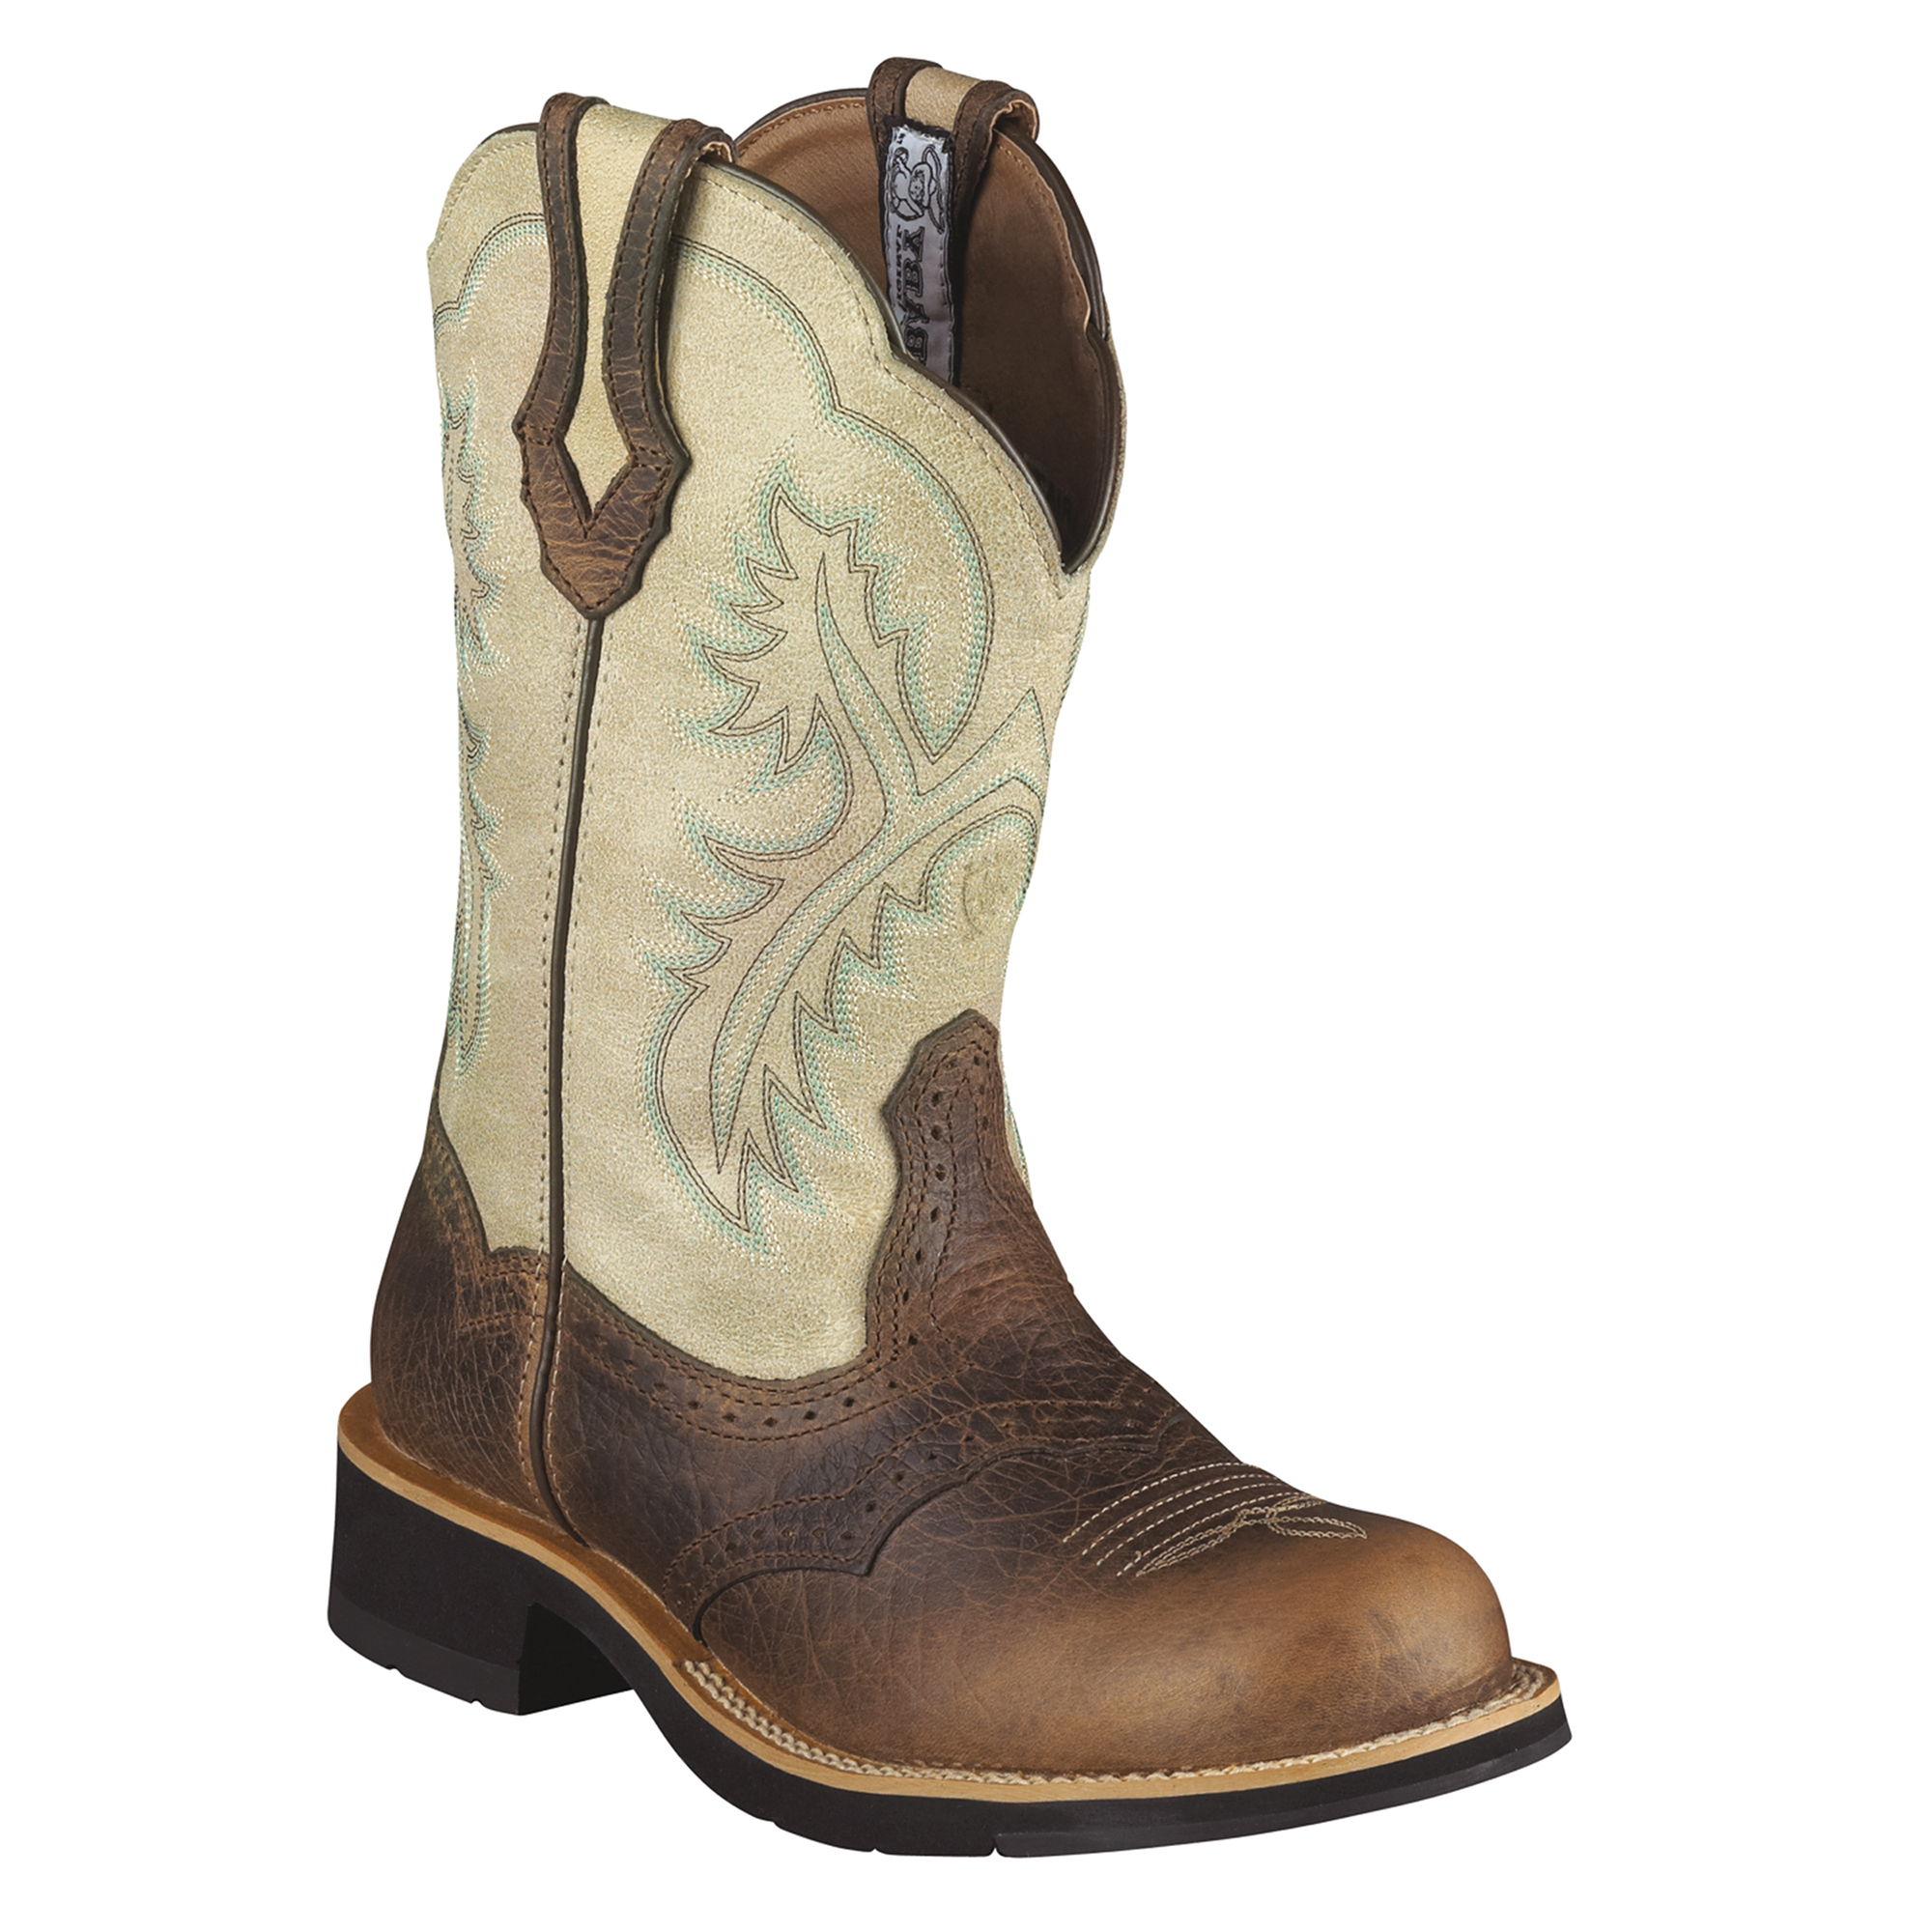 Ariat Fatbaby Cowgirl Boots 2ZkhcPcM